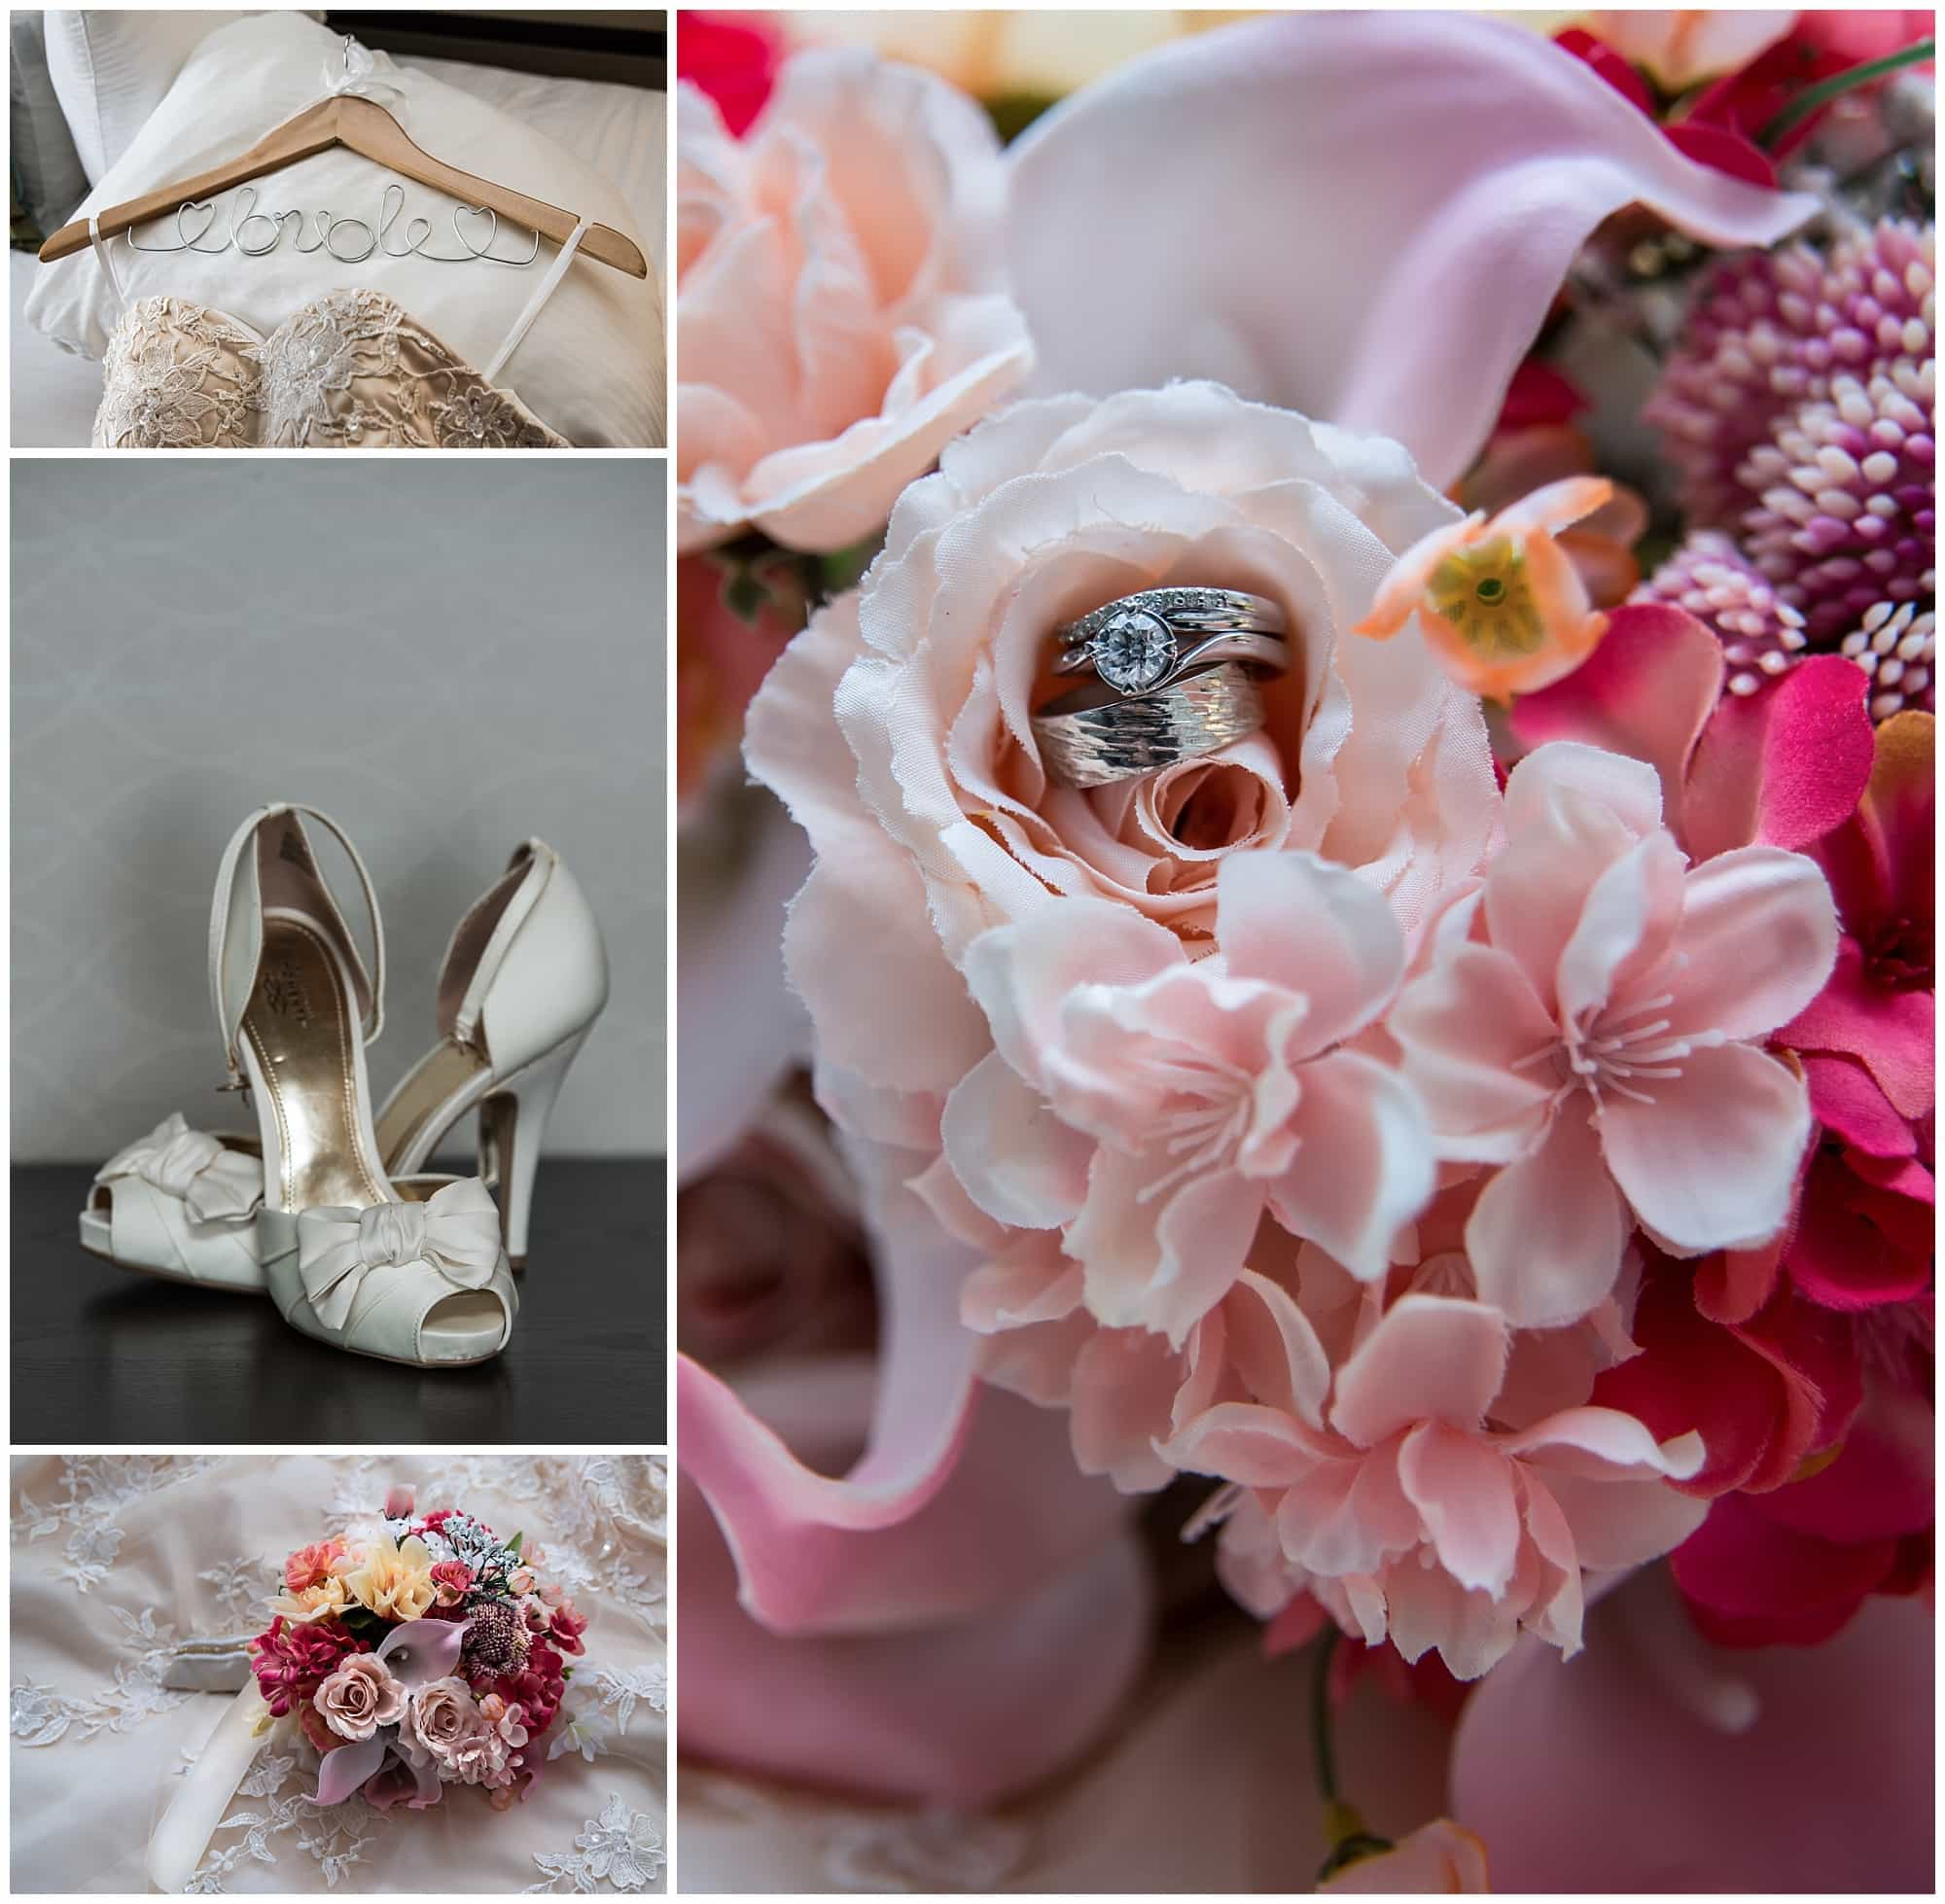 The bride's wedding dress, bridal bouquet, wedding shoes and rings during bridal prep at the Atlantica Hotel in Halifax, NS.